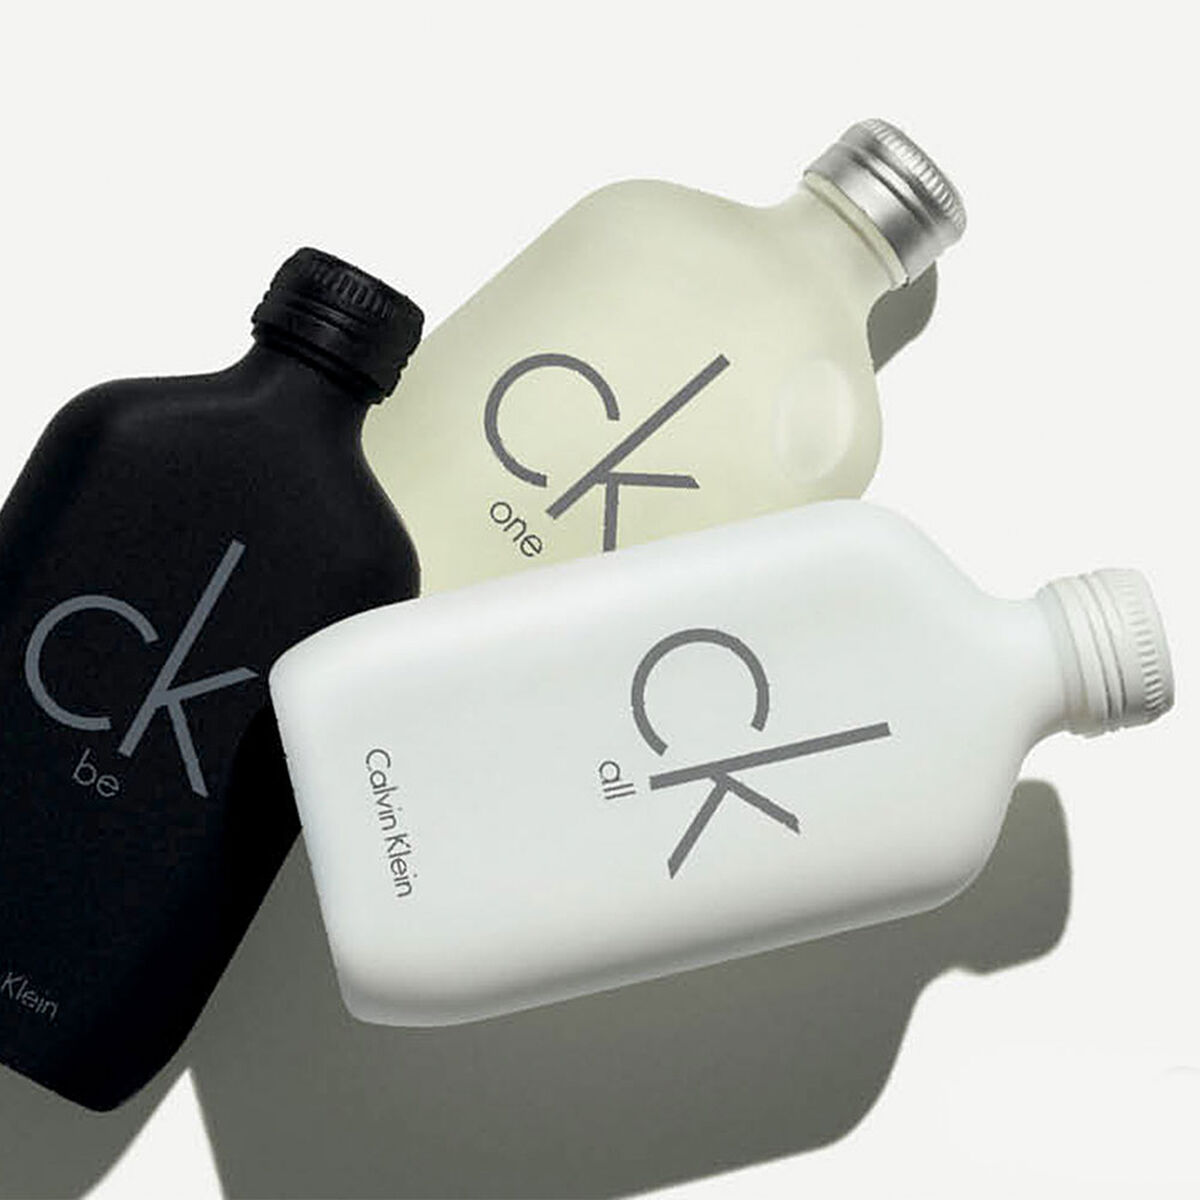 CK All Edt 100 ml